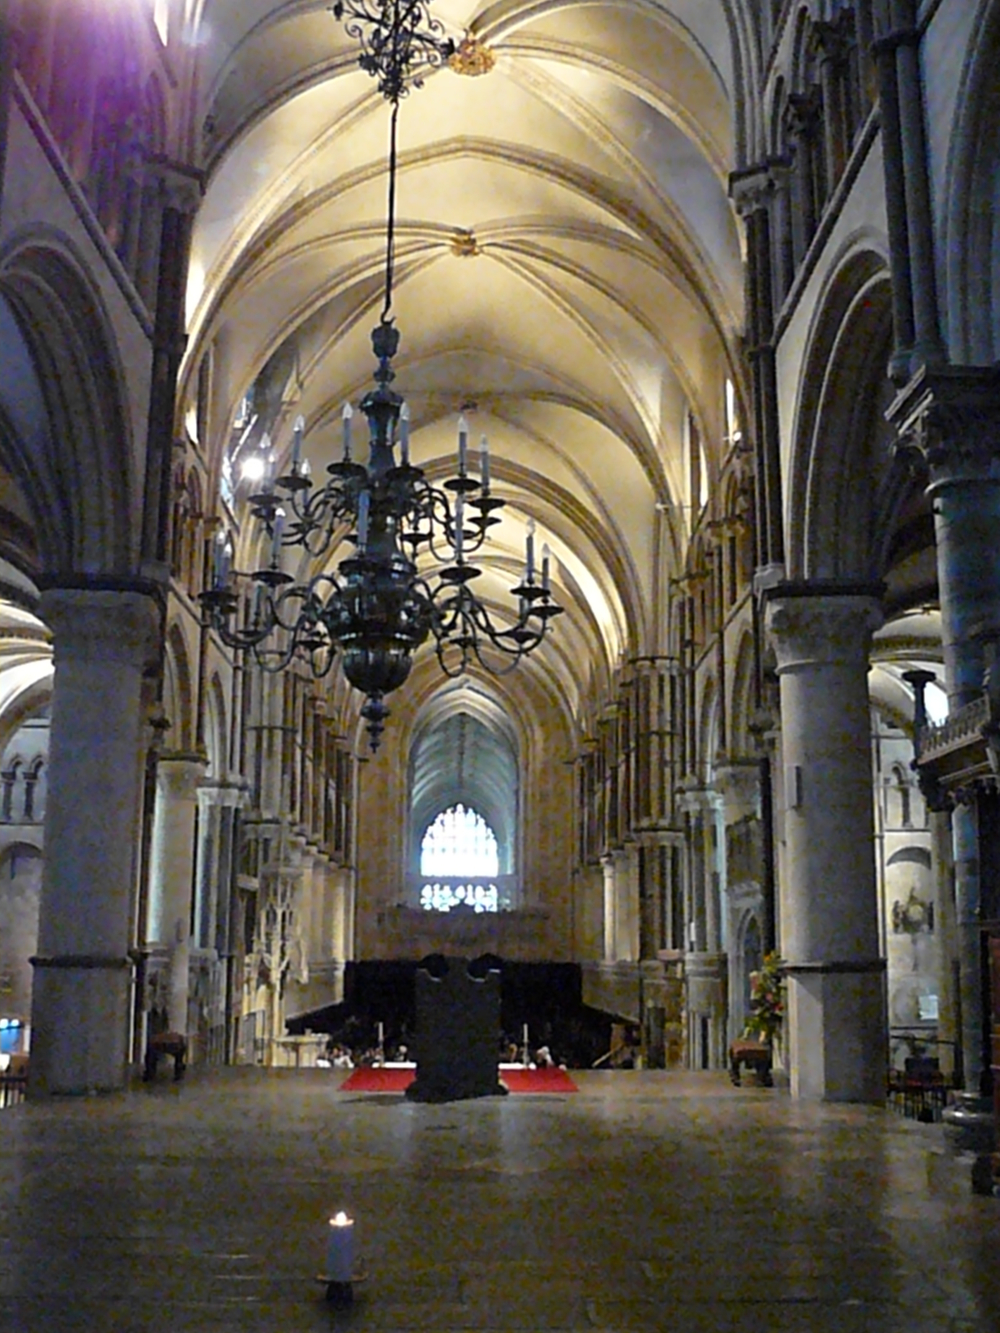 A view from behind the alter in Canterbury Cathedral.